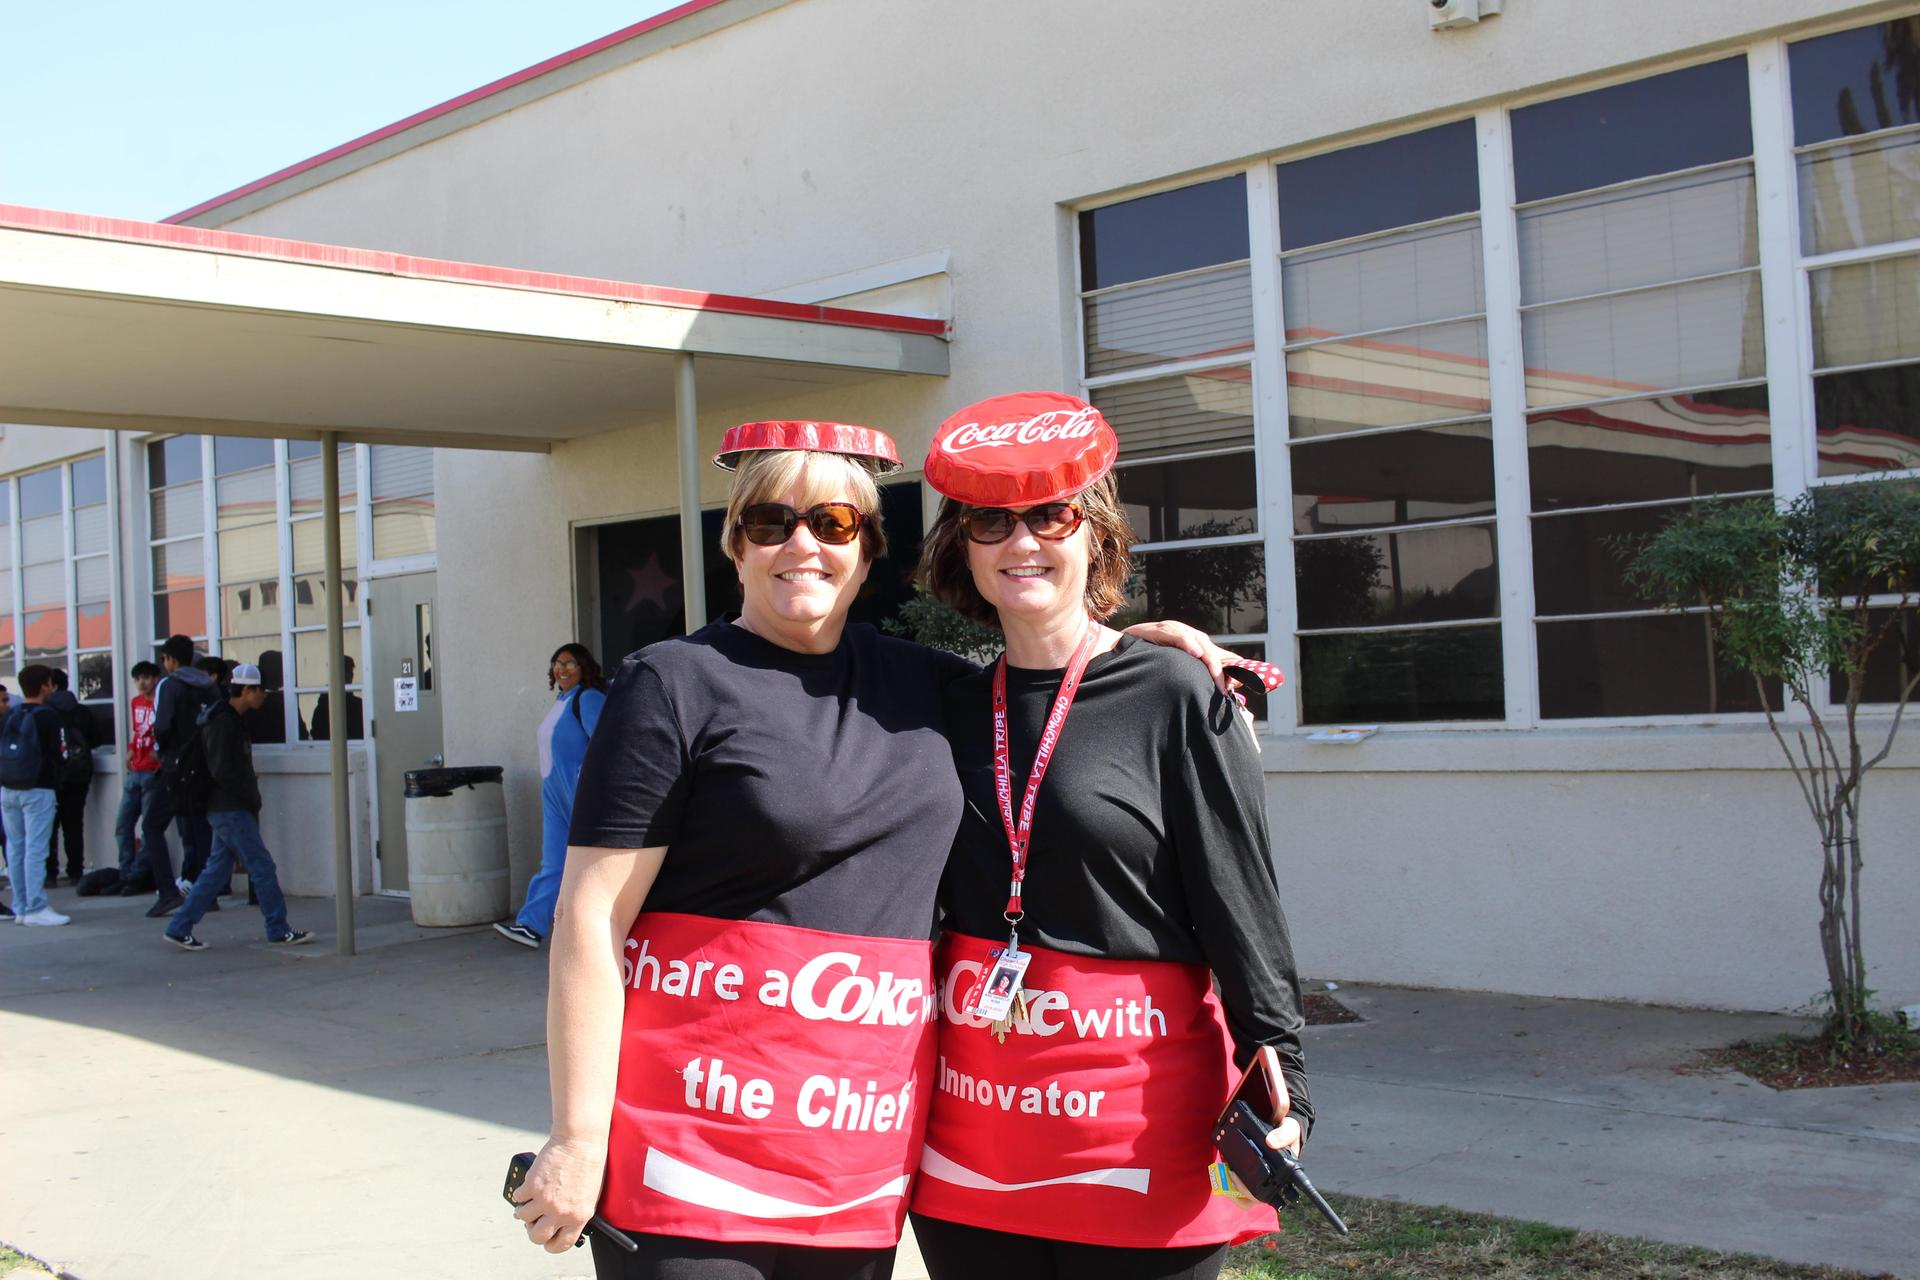 Mrs. Castillo and Ms. Ross dressed as Coke bottles